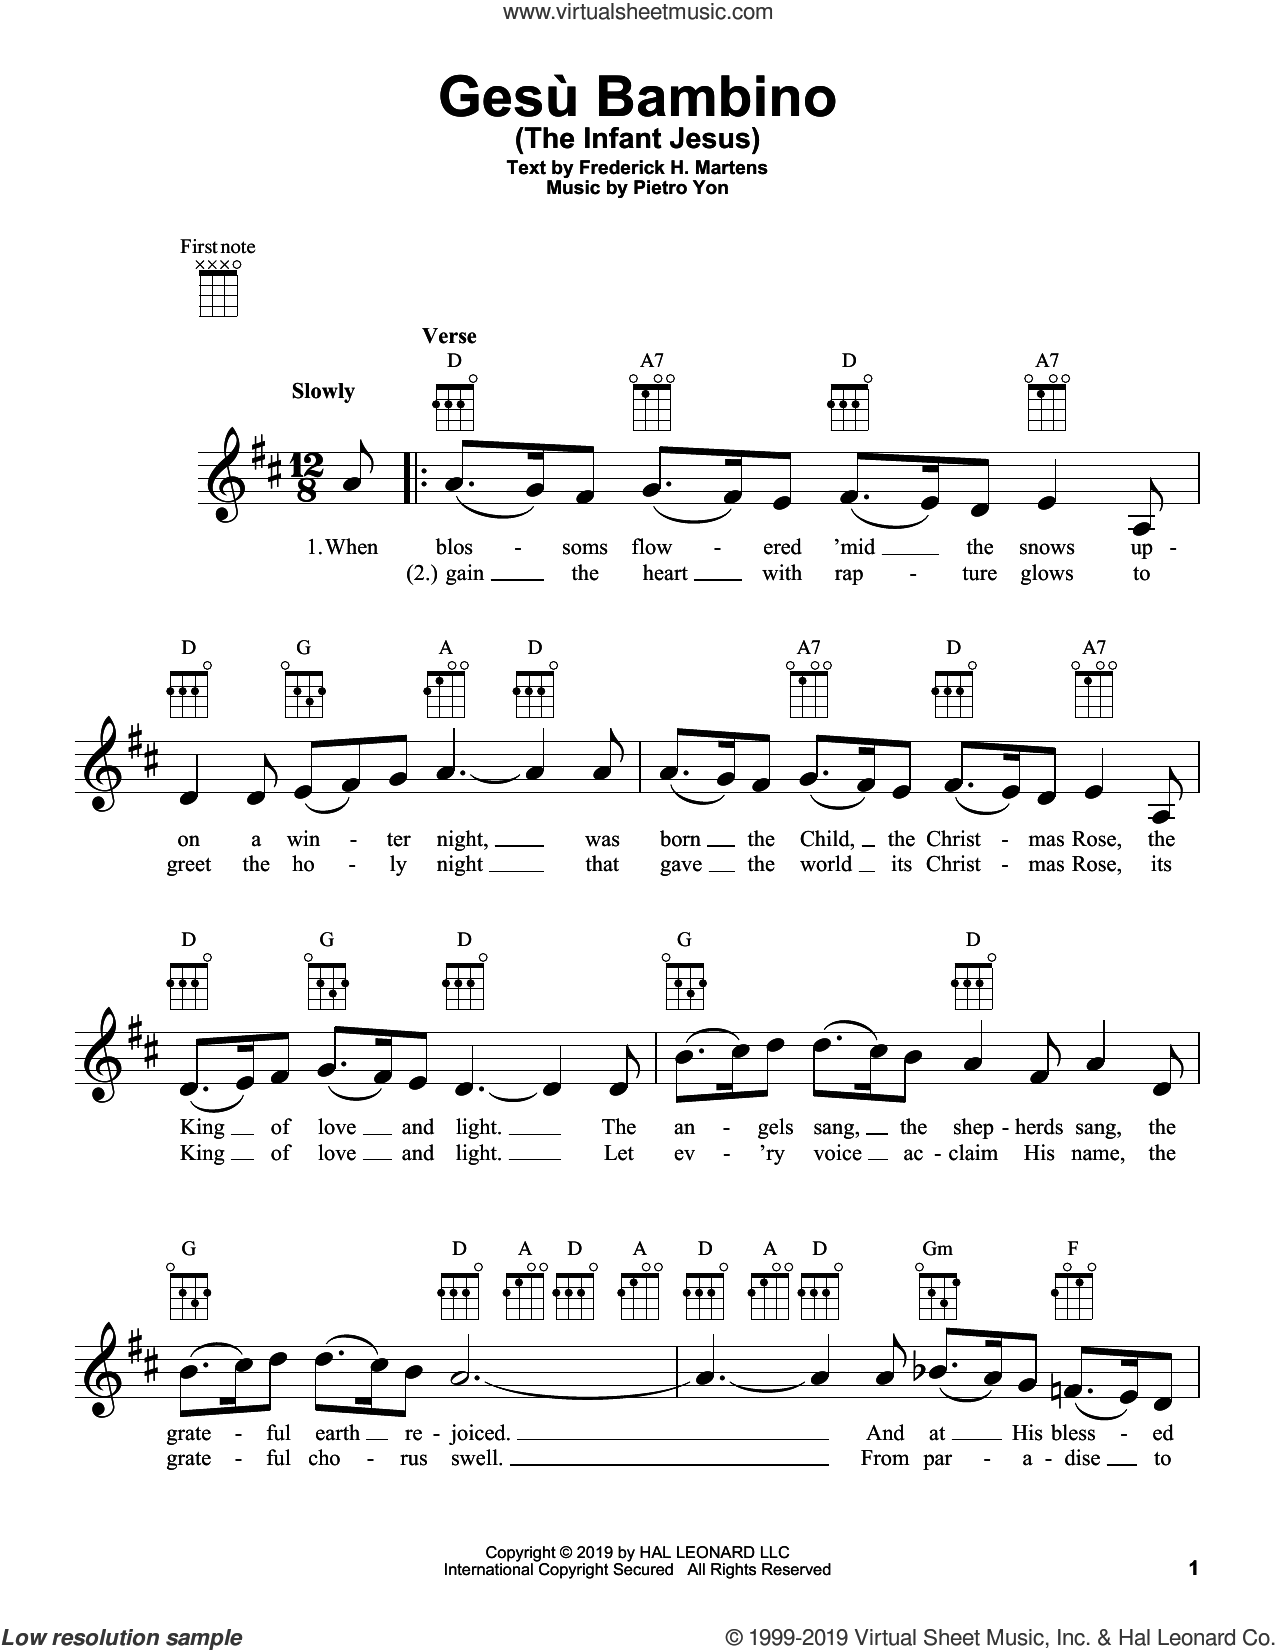 Gesu Bambino (The Infant Jesus) sheet music for ukulele by Pietro Yon and Frederick H. Martens, intermediate skill level